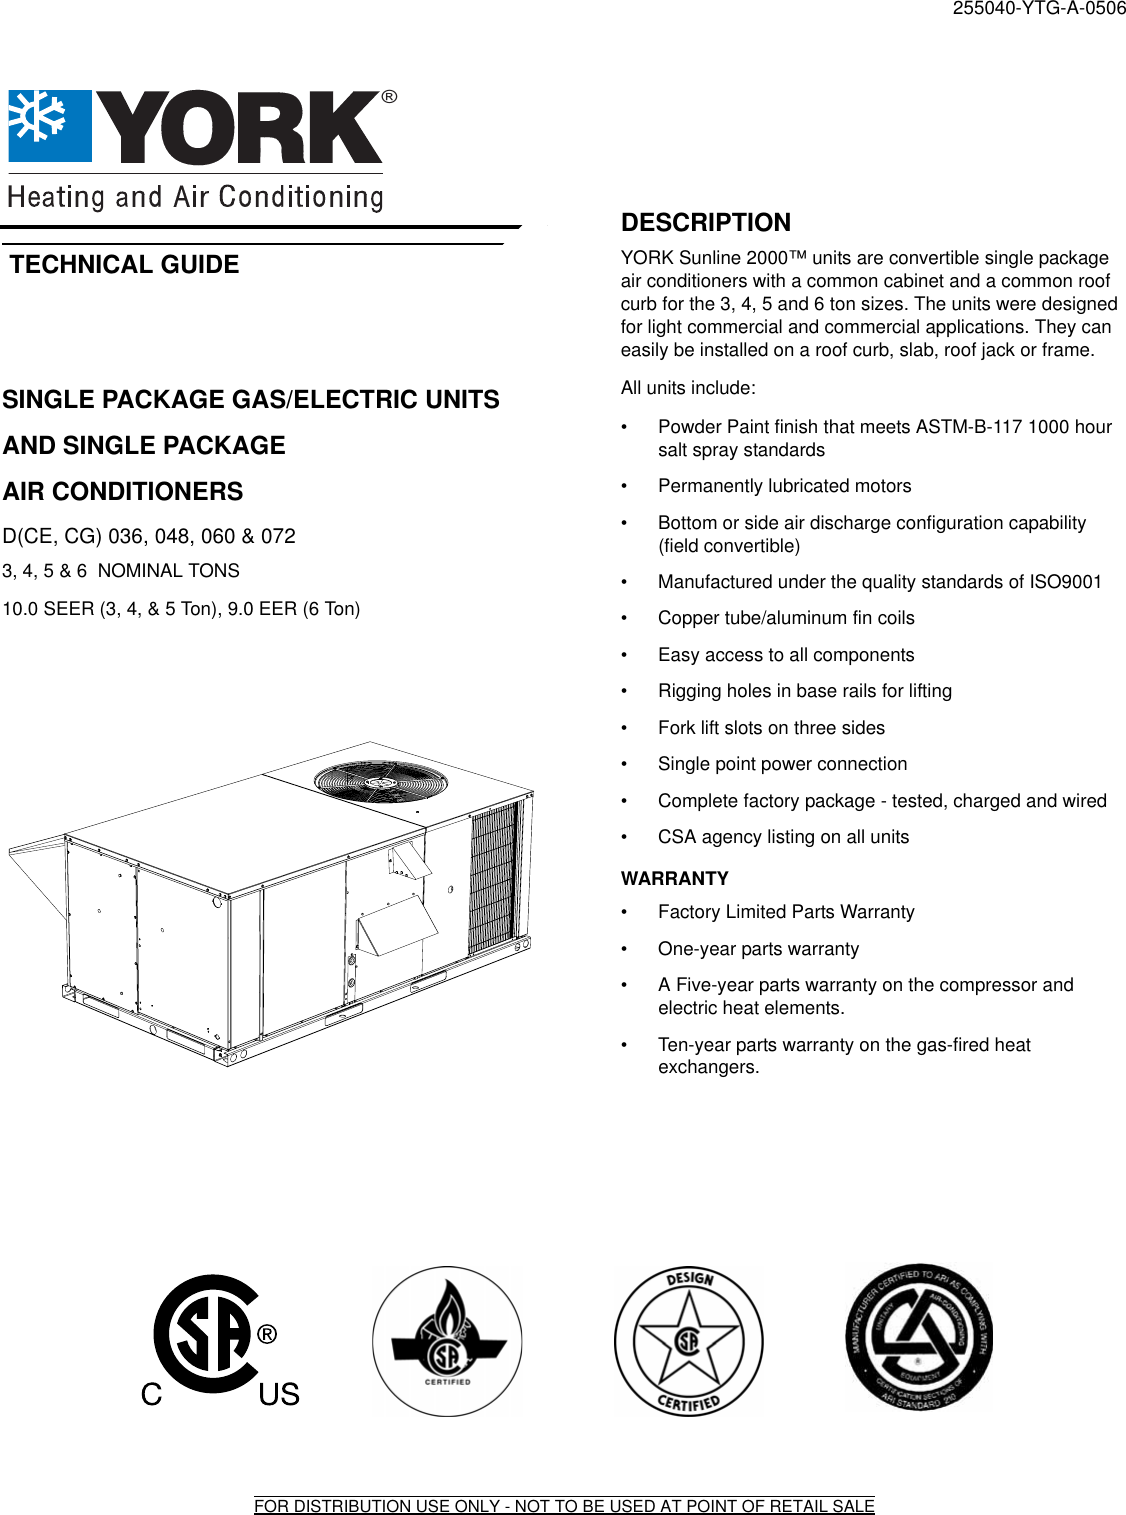 York 36 Users Manual Y Tg Single Package Gas Elec Units And Sgl Pkg